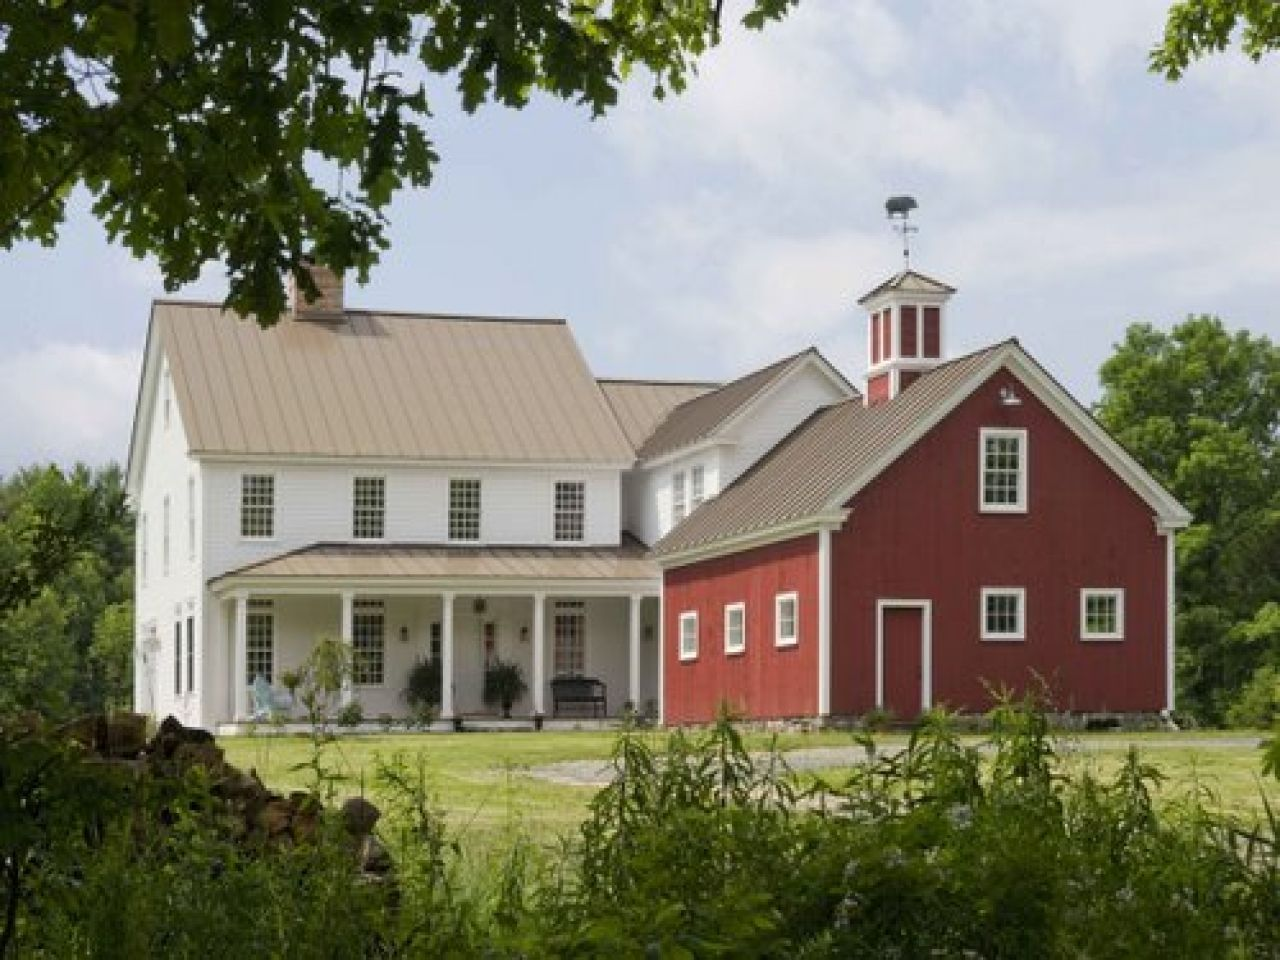 simple farmhouse pics Yahoo Search Results